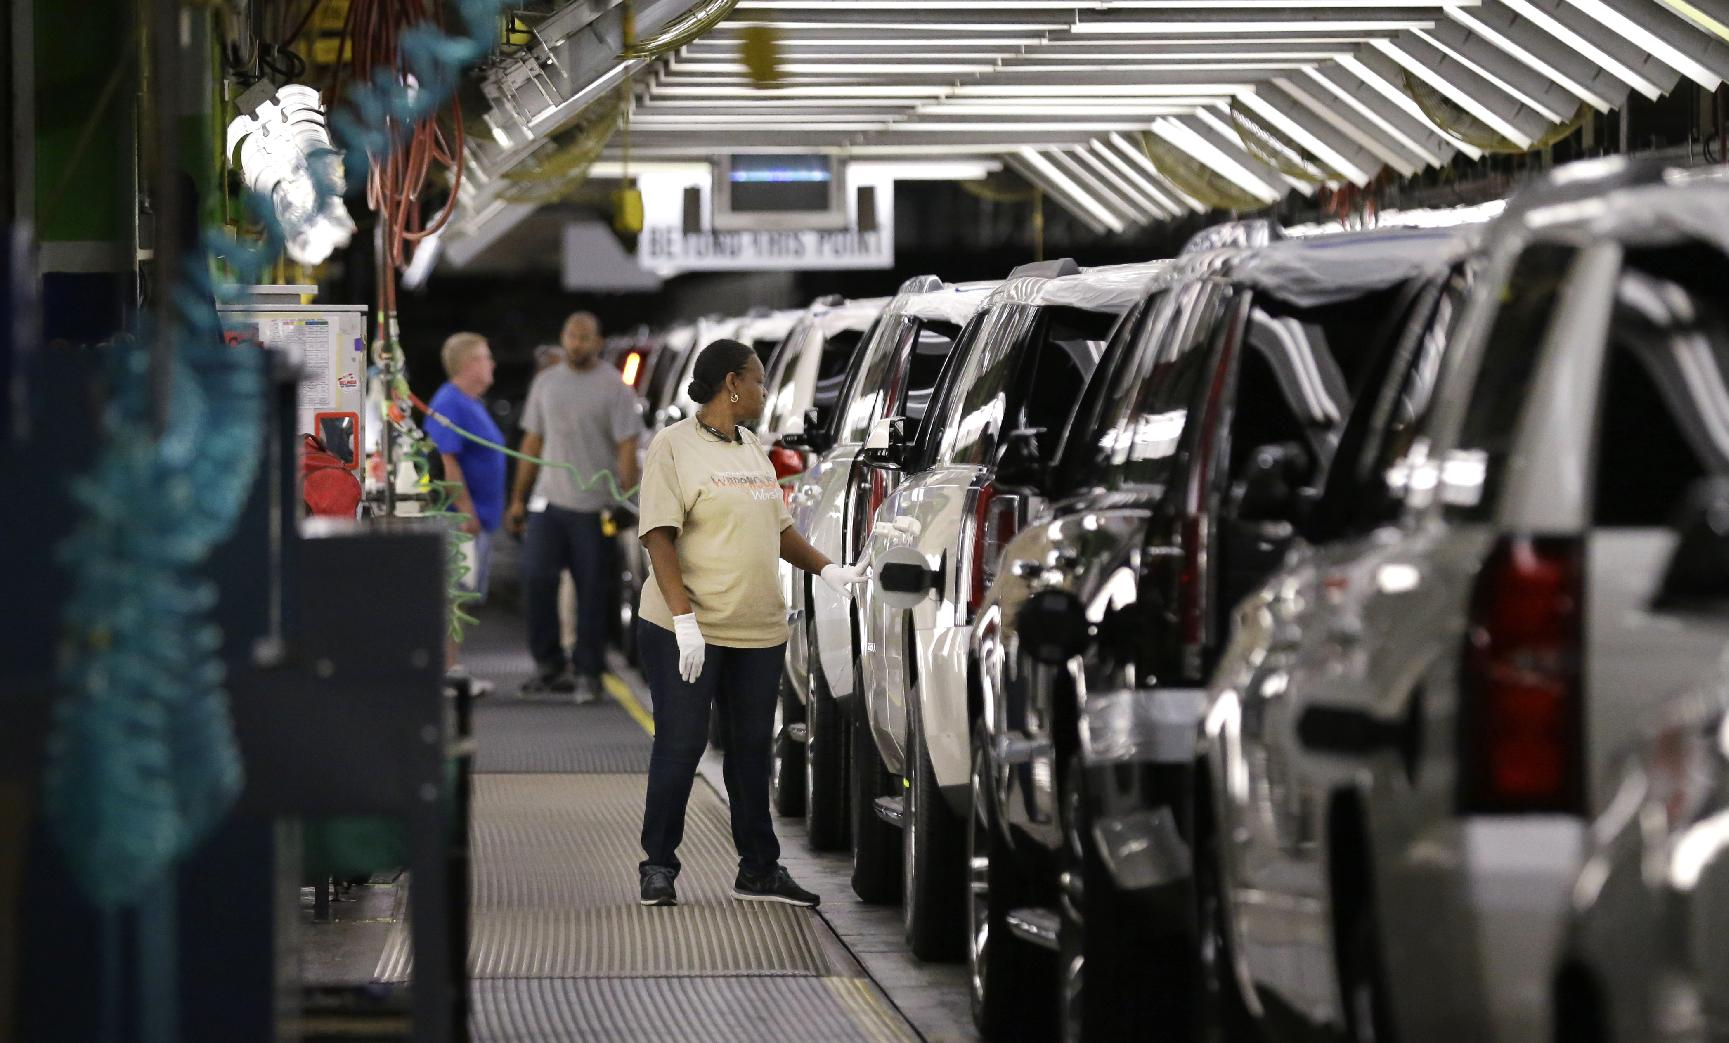 FILE - In this May 13, 2014 file photo, an auto worker inspects finished SUVs coming off the assembly line at the General Motors auto plant in Arlington, Texas. As General Motors tackles a safety crisis, a look at its numbers from June show just how intent the company is on keeping new-car sales on the rise during a record spate of safety recalls. (AP Photo/LM Otero, File)